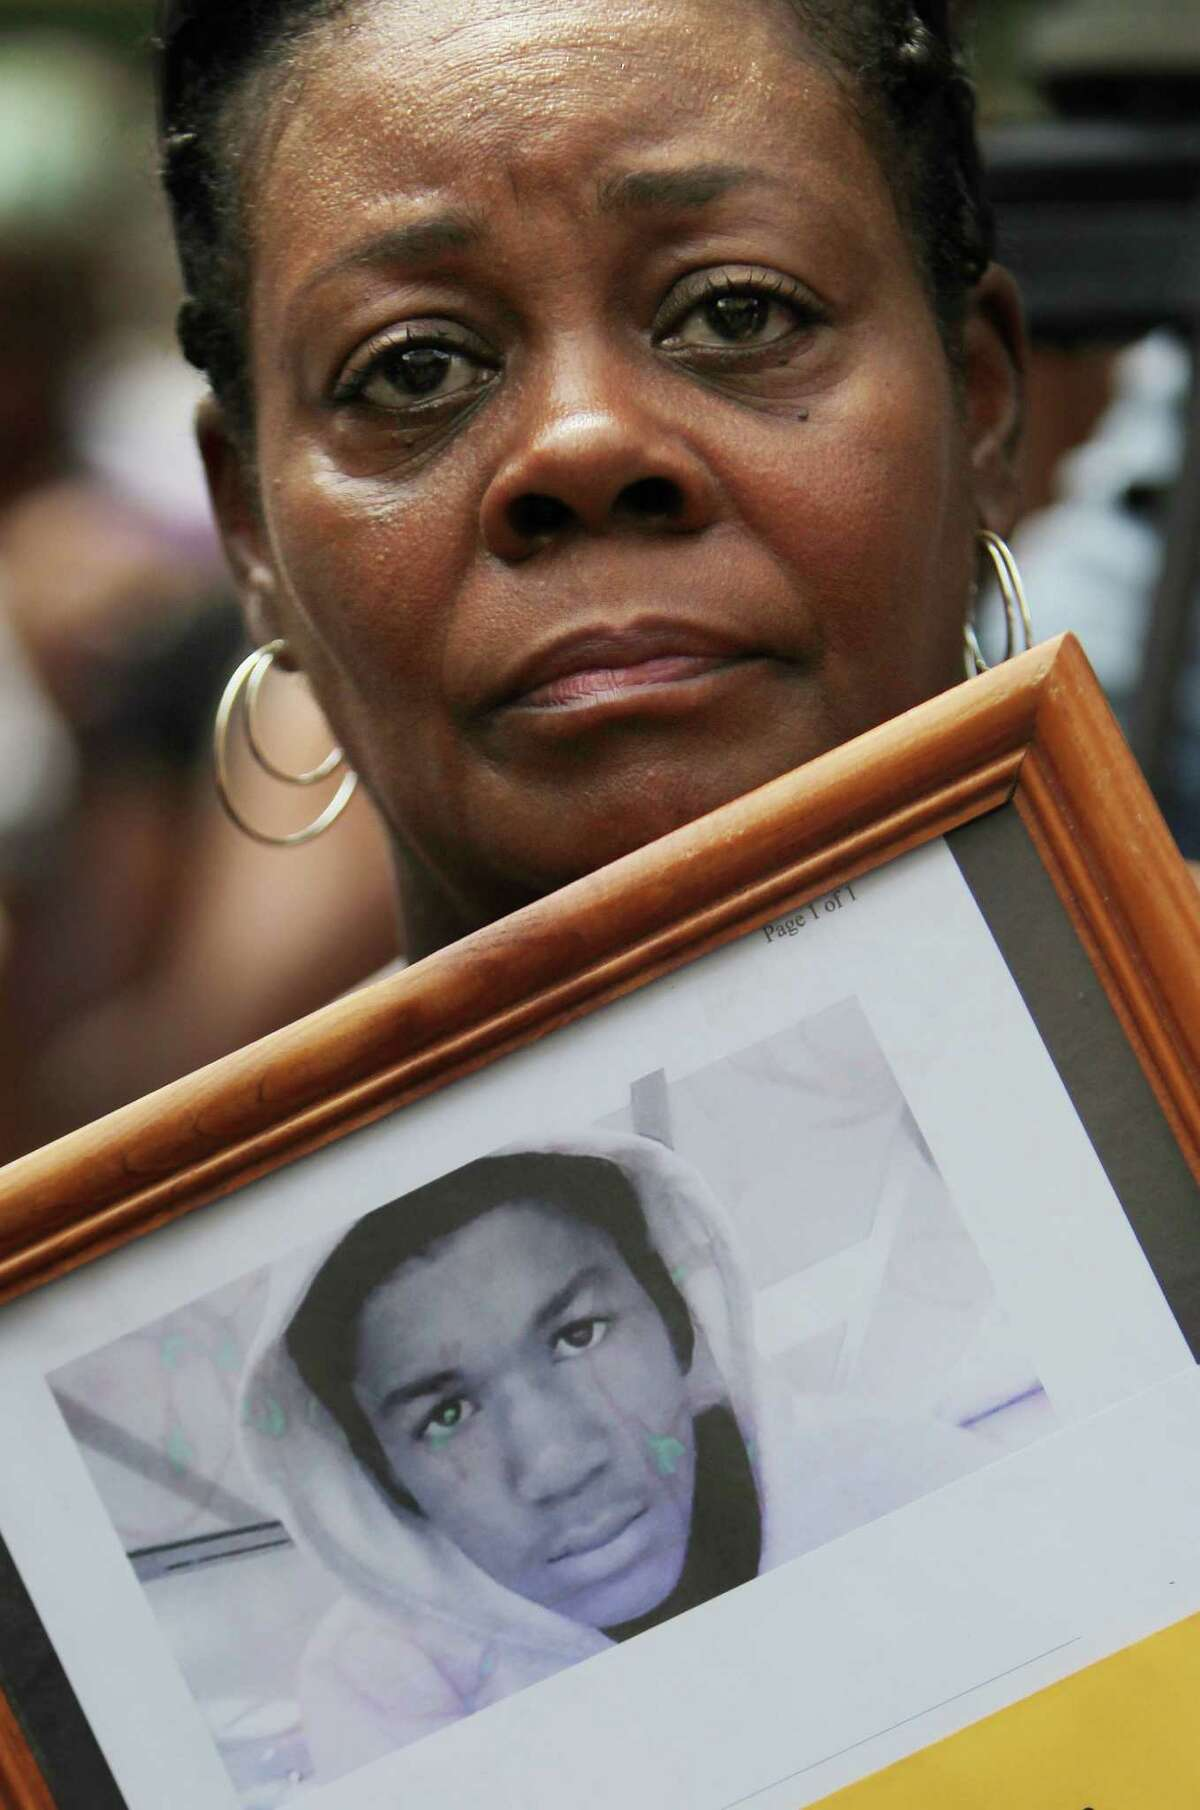 Cheryl Foster holds a framed photo in honor of Trayvon Martin during peace protest at City Hall on Saturday in Houston.